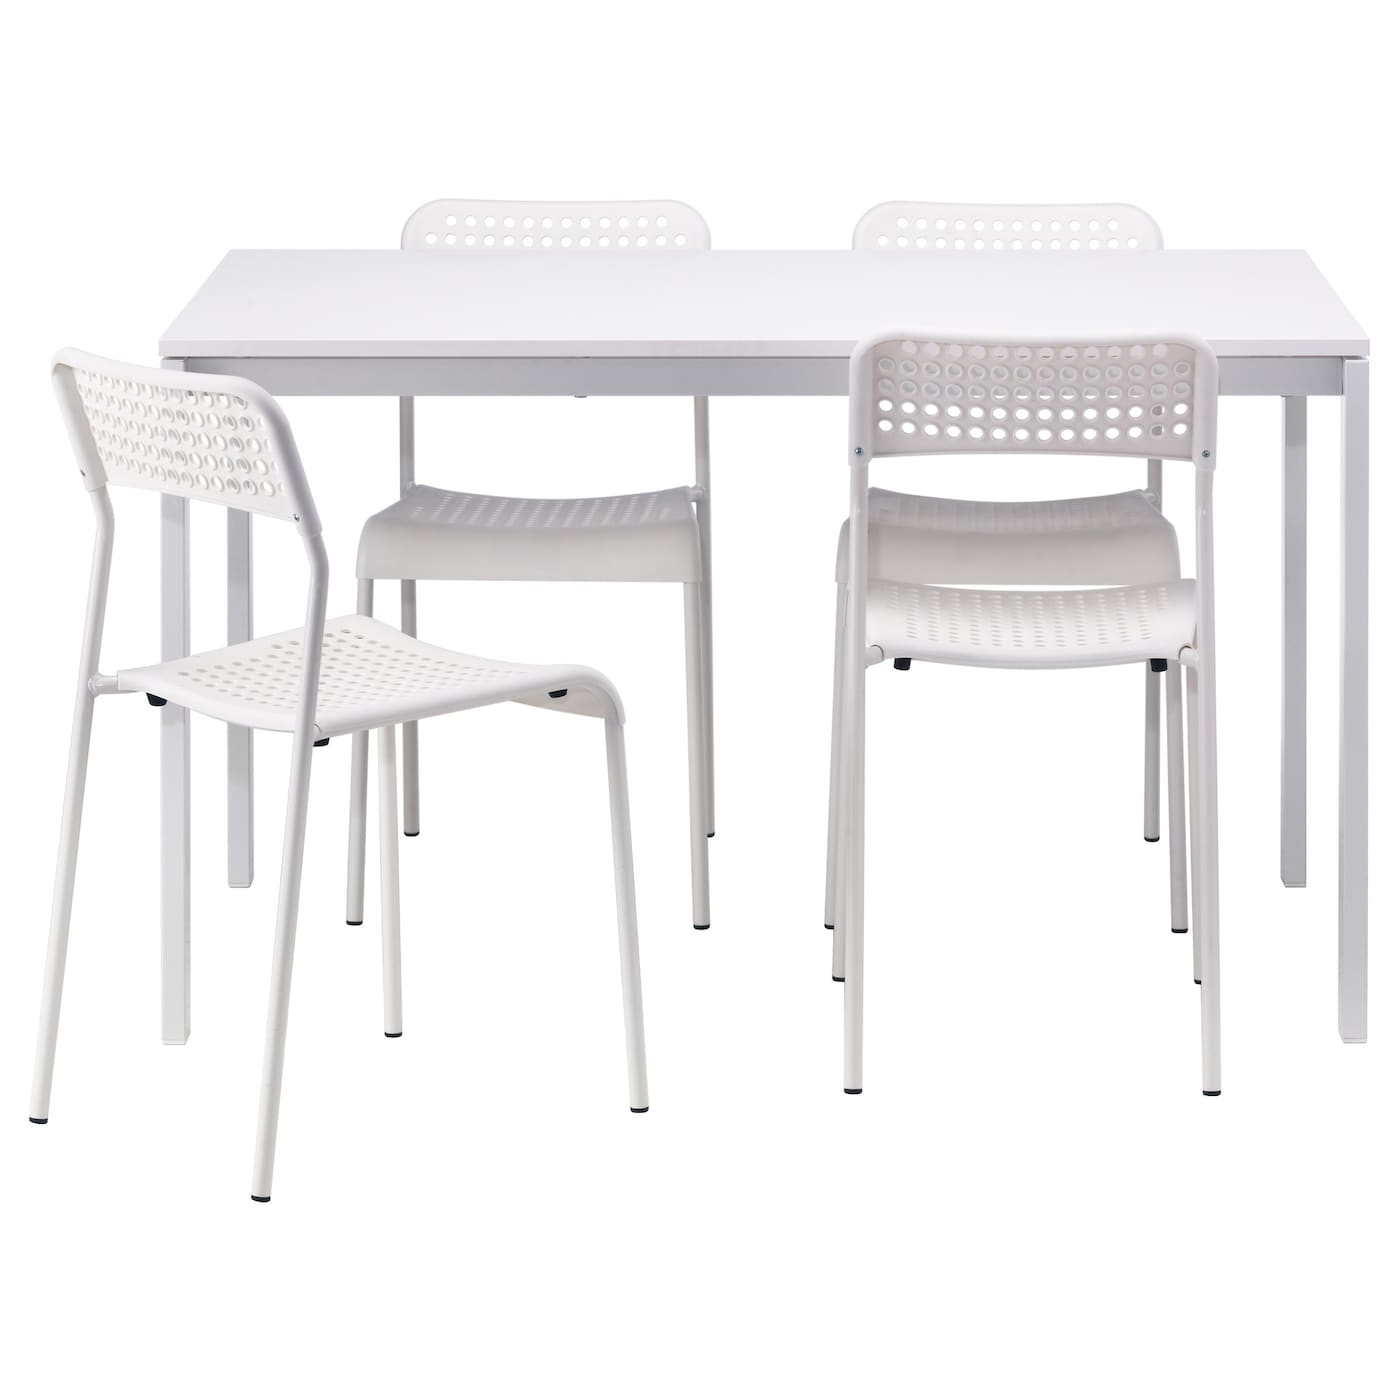 IKEA MELLTORP/ADDE table and 4 chairs Seats 4.